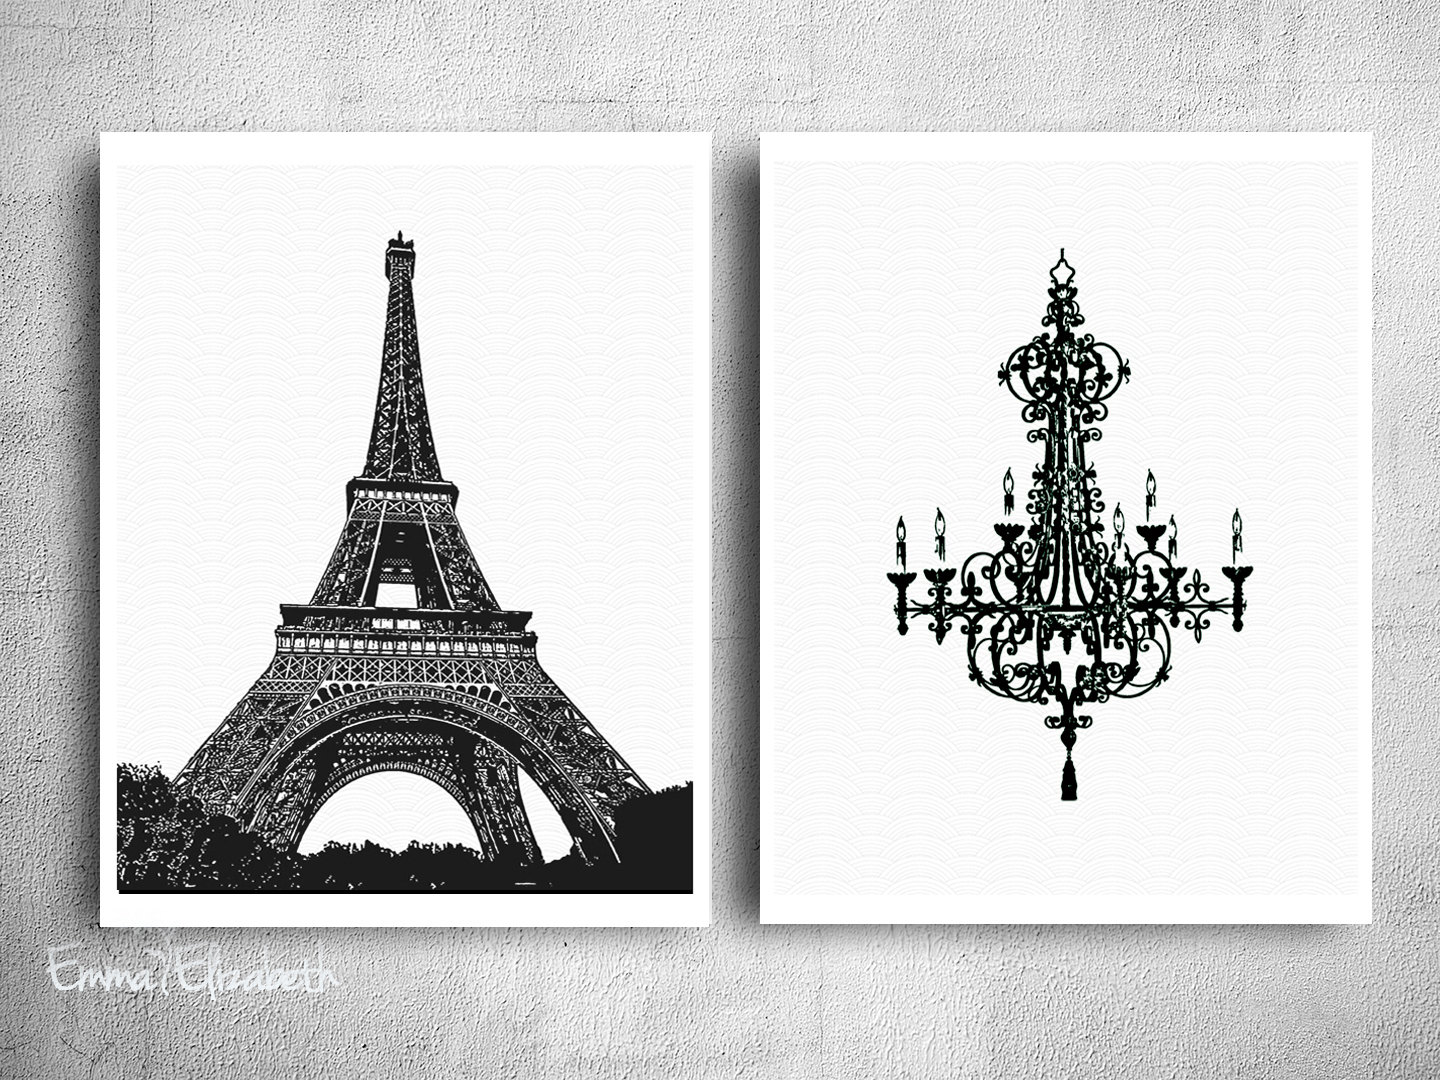 Chic wall decor black white poster print simple clean art french chic wall decor black white poster print simple clean art french home decor paris eiffel tower all categorieslightingchandeliers arubaitofo Choice Image